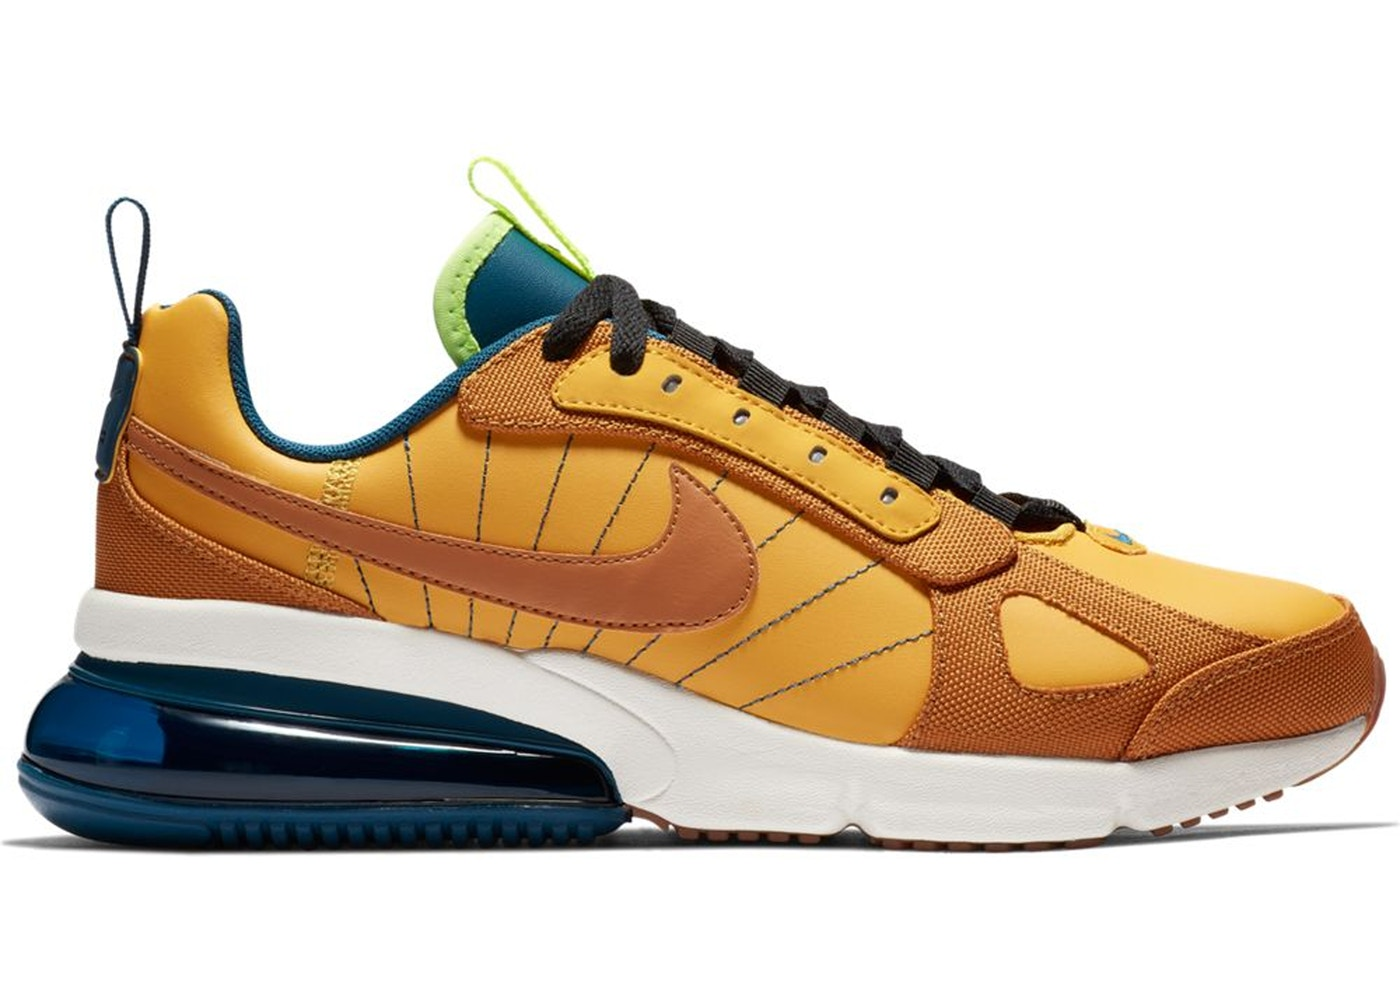 new product b7c34 9d478 Air Max 270 Futura Yellow Ochre Desert Ochre